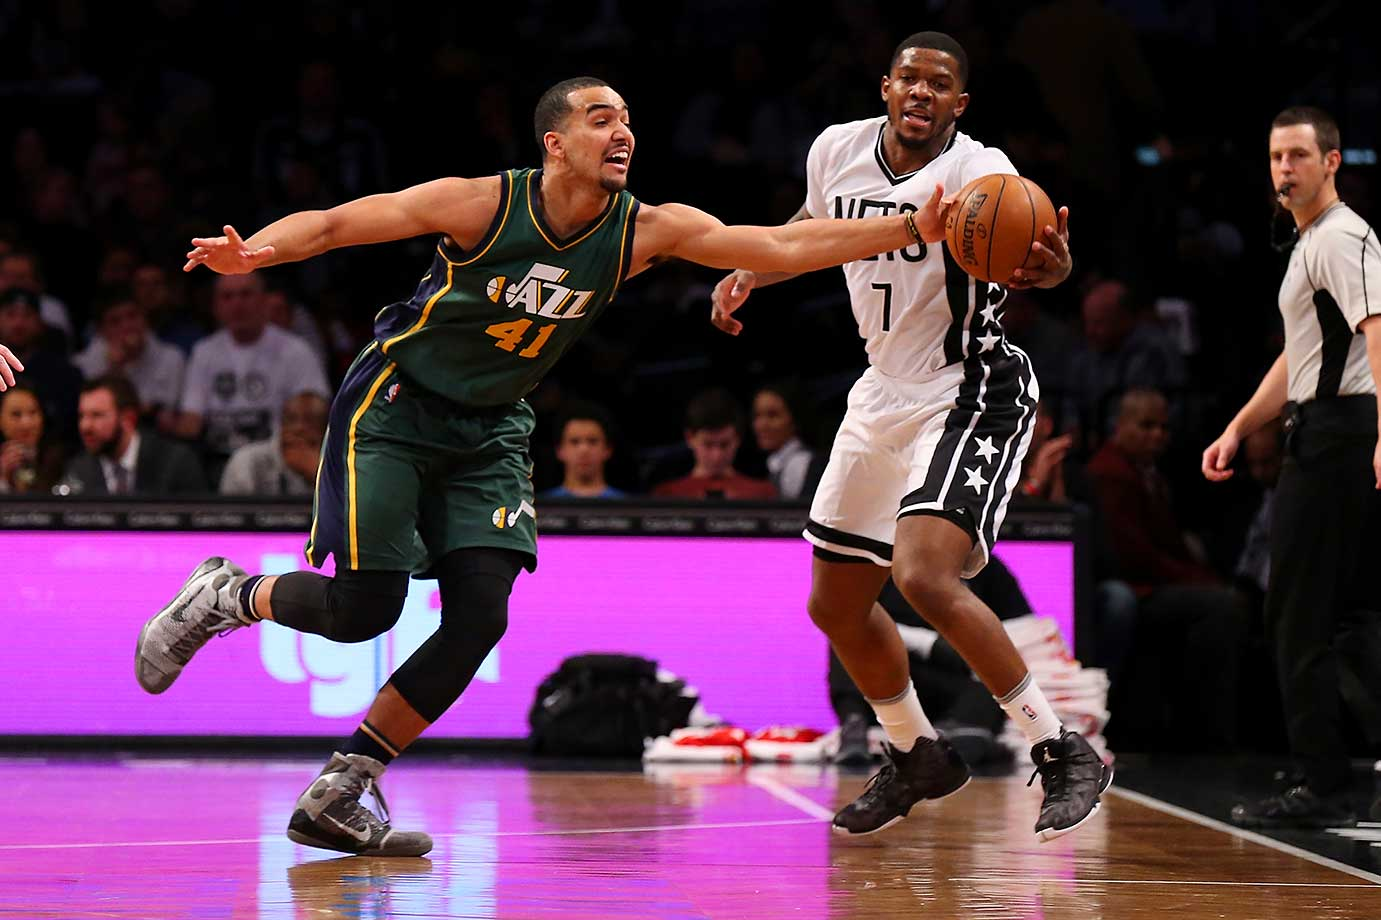 Trey Lyles of the Utah Jazz and Joe Johnson of the Brooklyn Nets pursue the loose ball at the Barclays Center in Brooklyn.